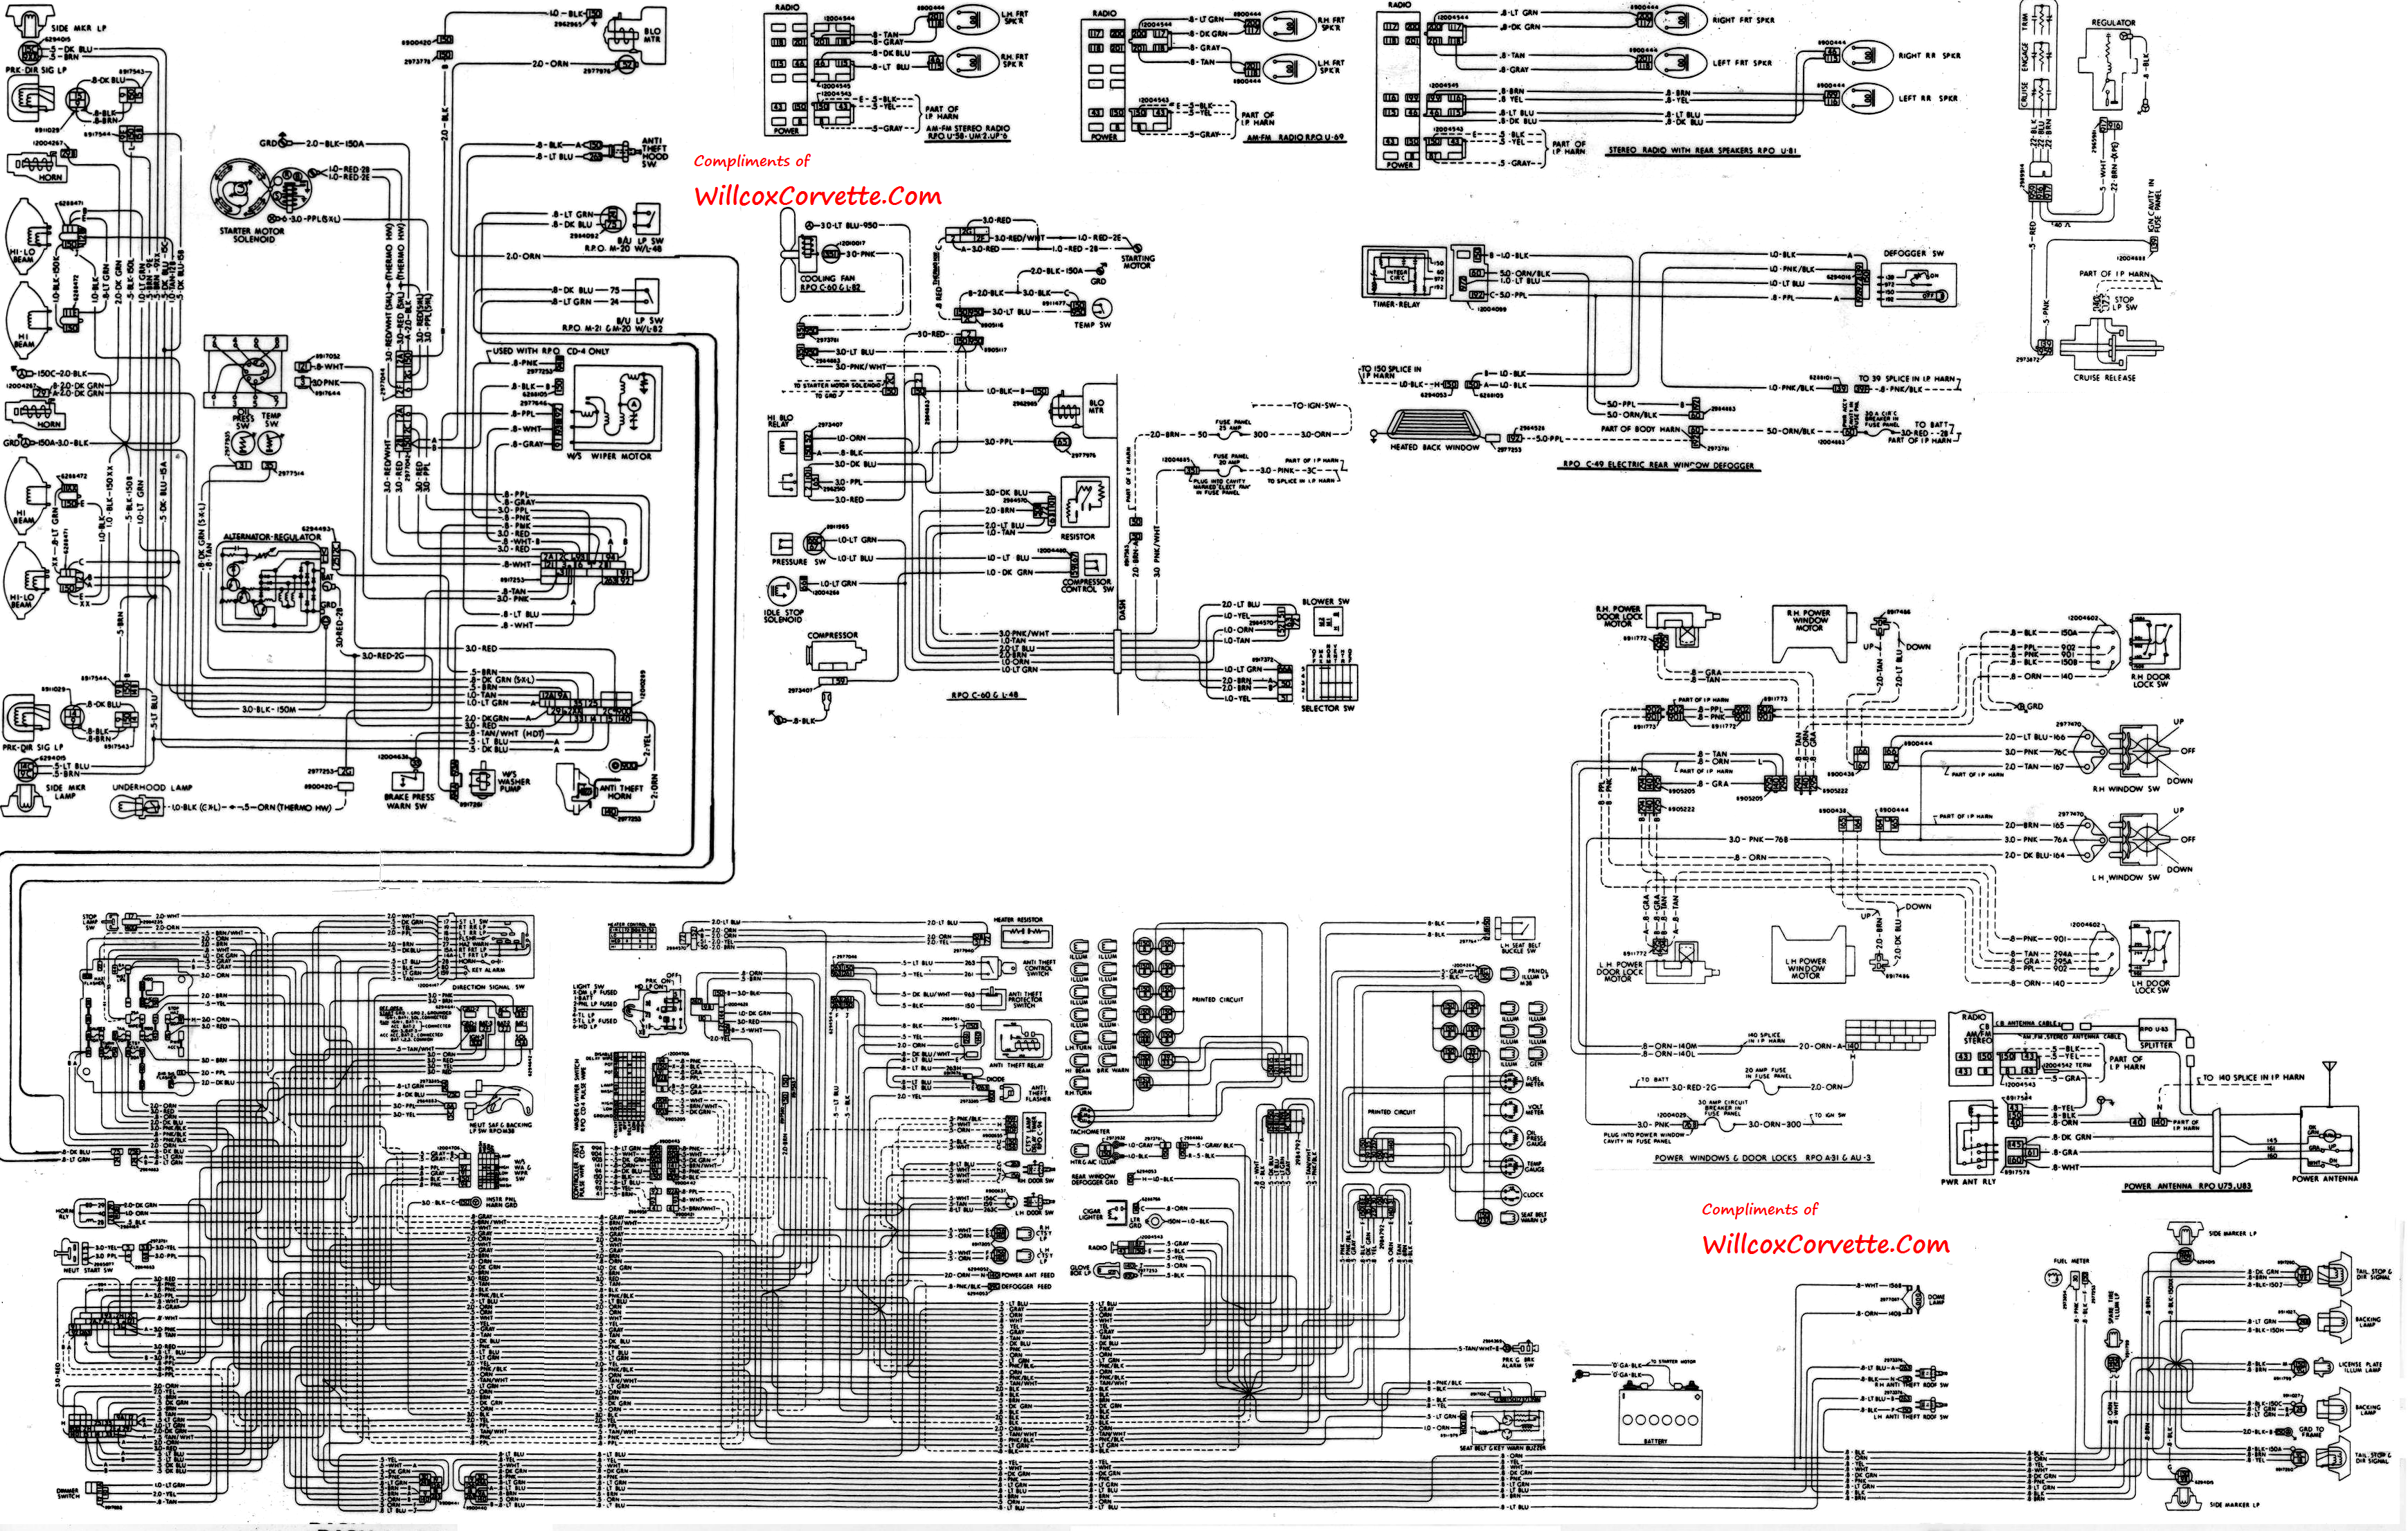 1979 wire diagram 1979 corvette tracer wiring diagram tracer schematic willcox corvette wiring schematic at soozxer.org